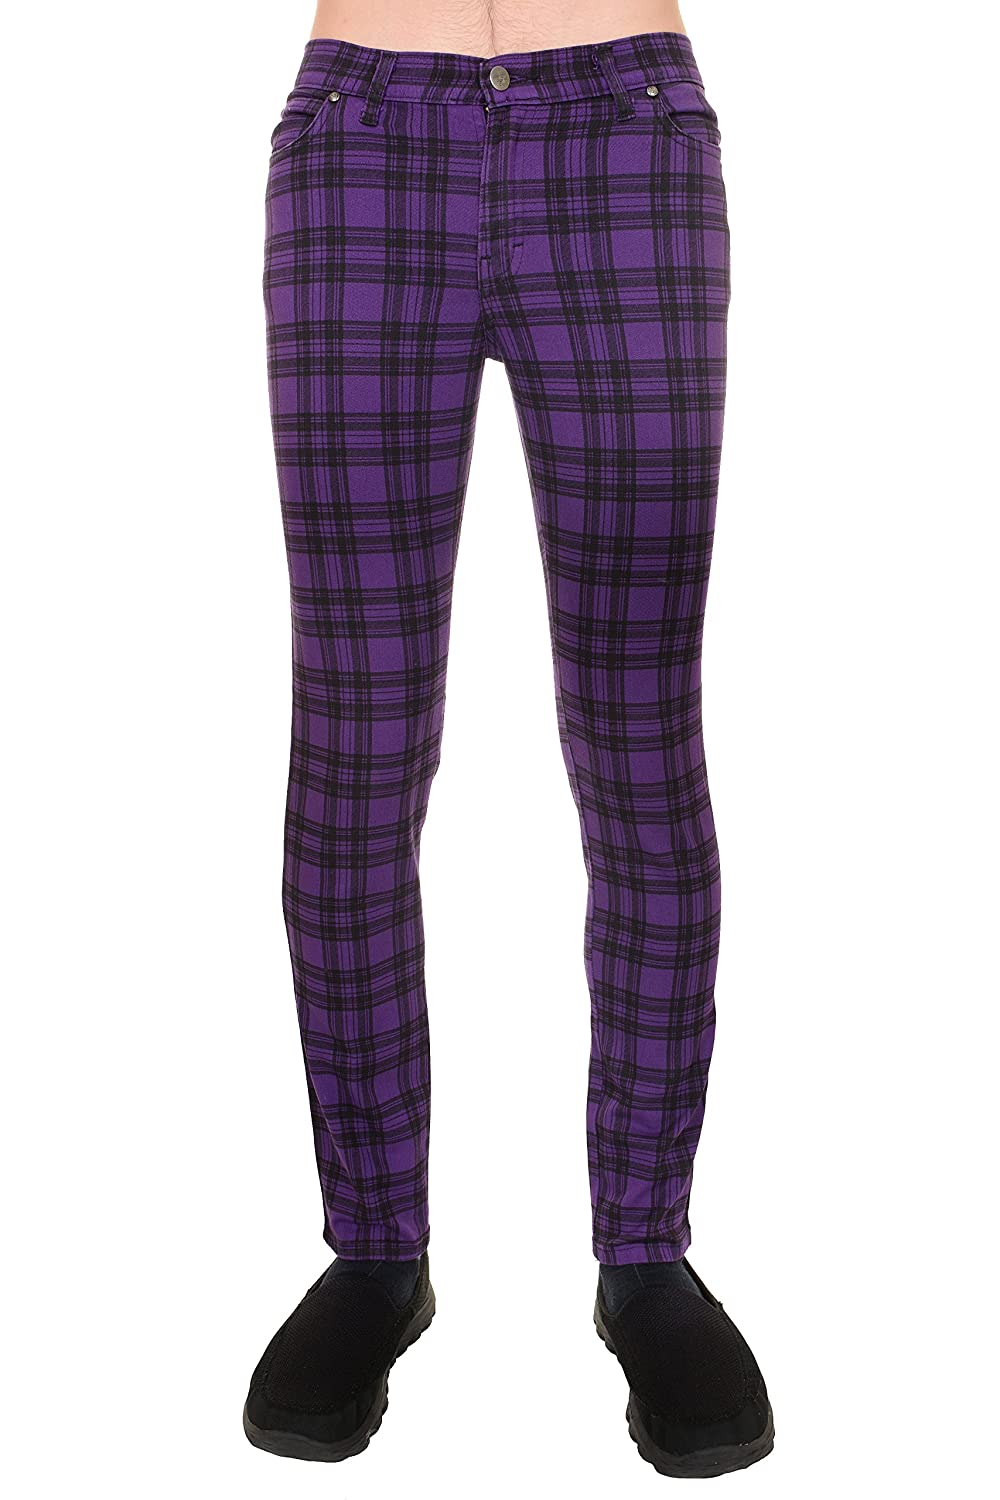 60s – 70s Mens Bell Bottom Jeans, Flares, Disco Pants  60s Mod Purple & Black Tartan Stretch Skinny Jeans $51.95 AT vintagedancer.com